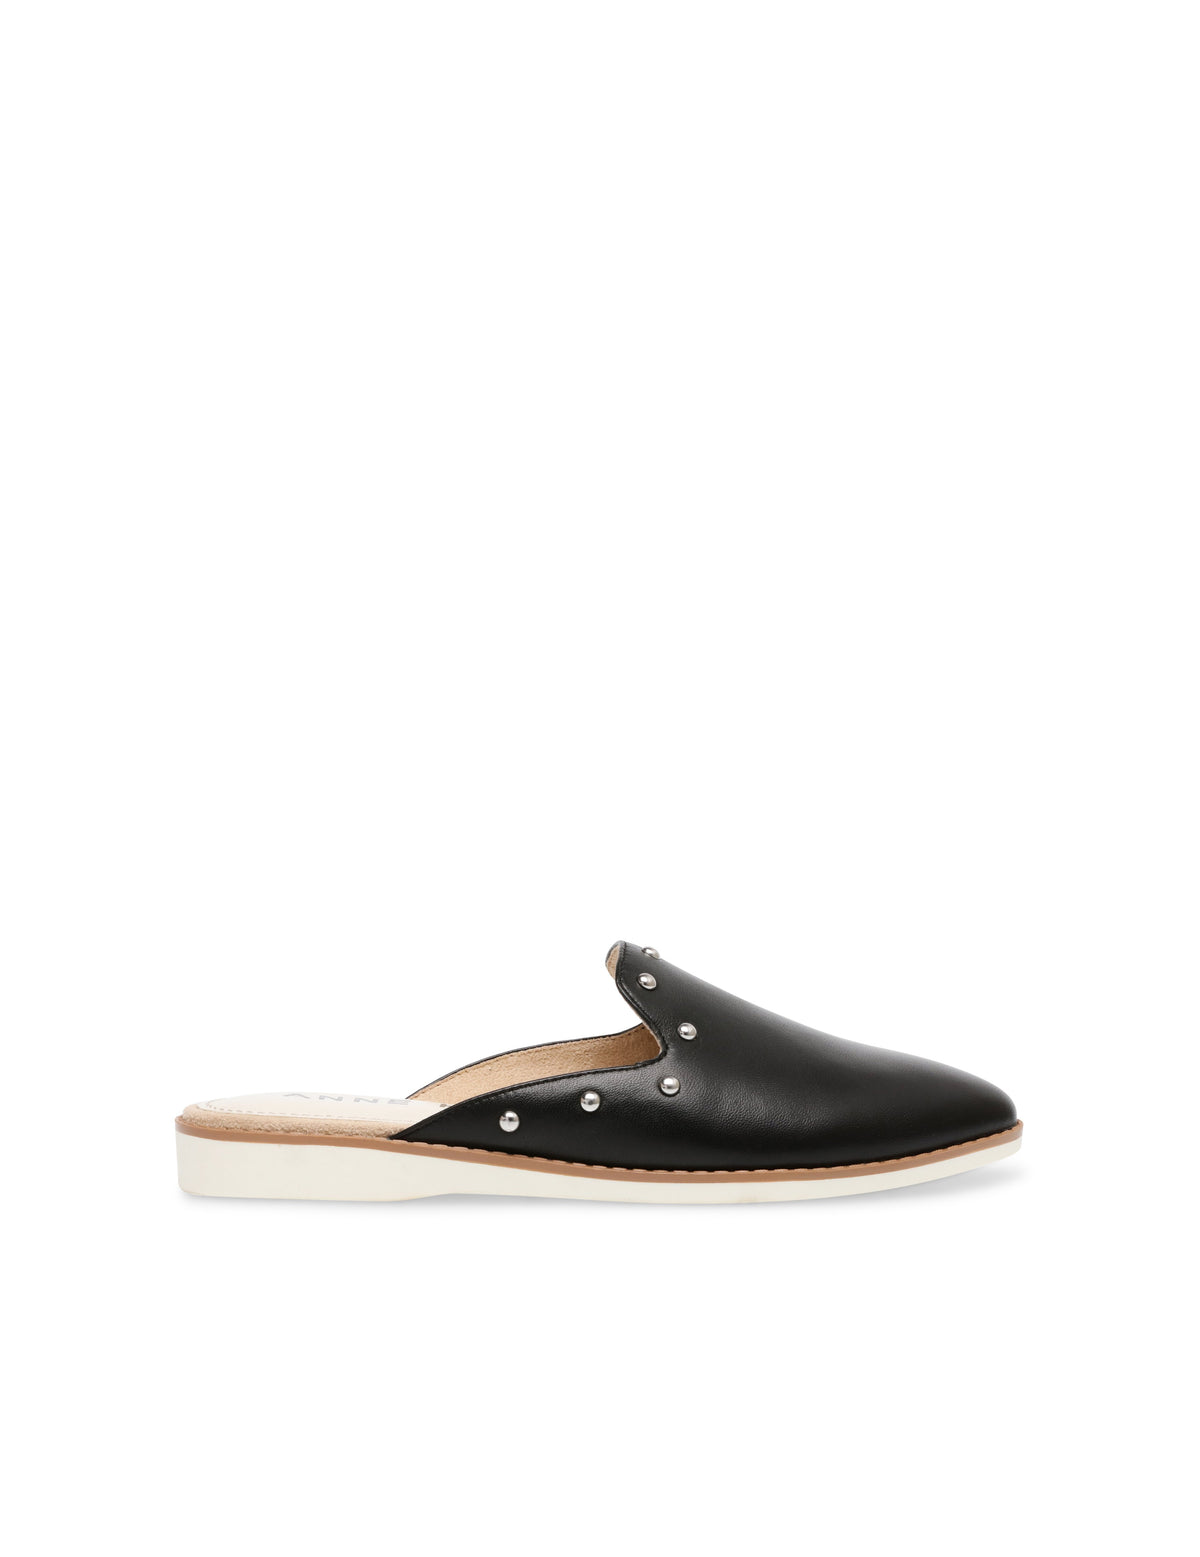 Anne Klein Shea Faux Leather Slip On Mule in Black